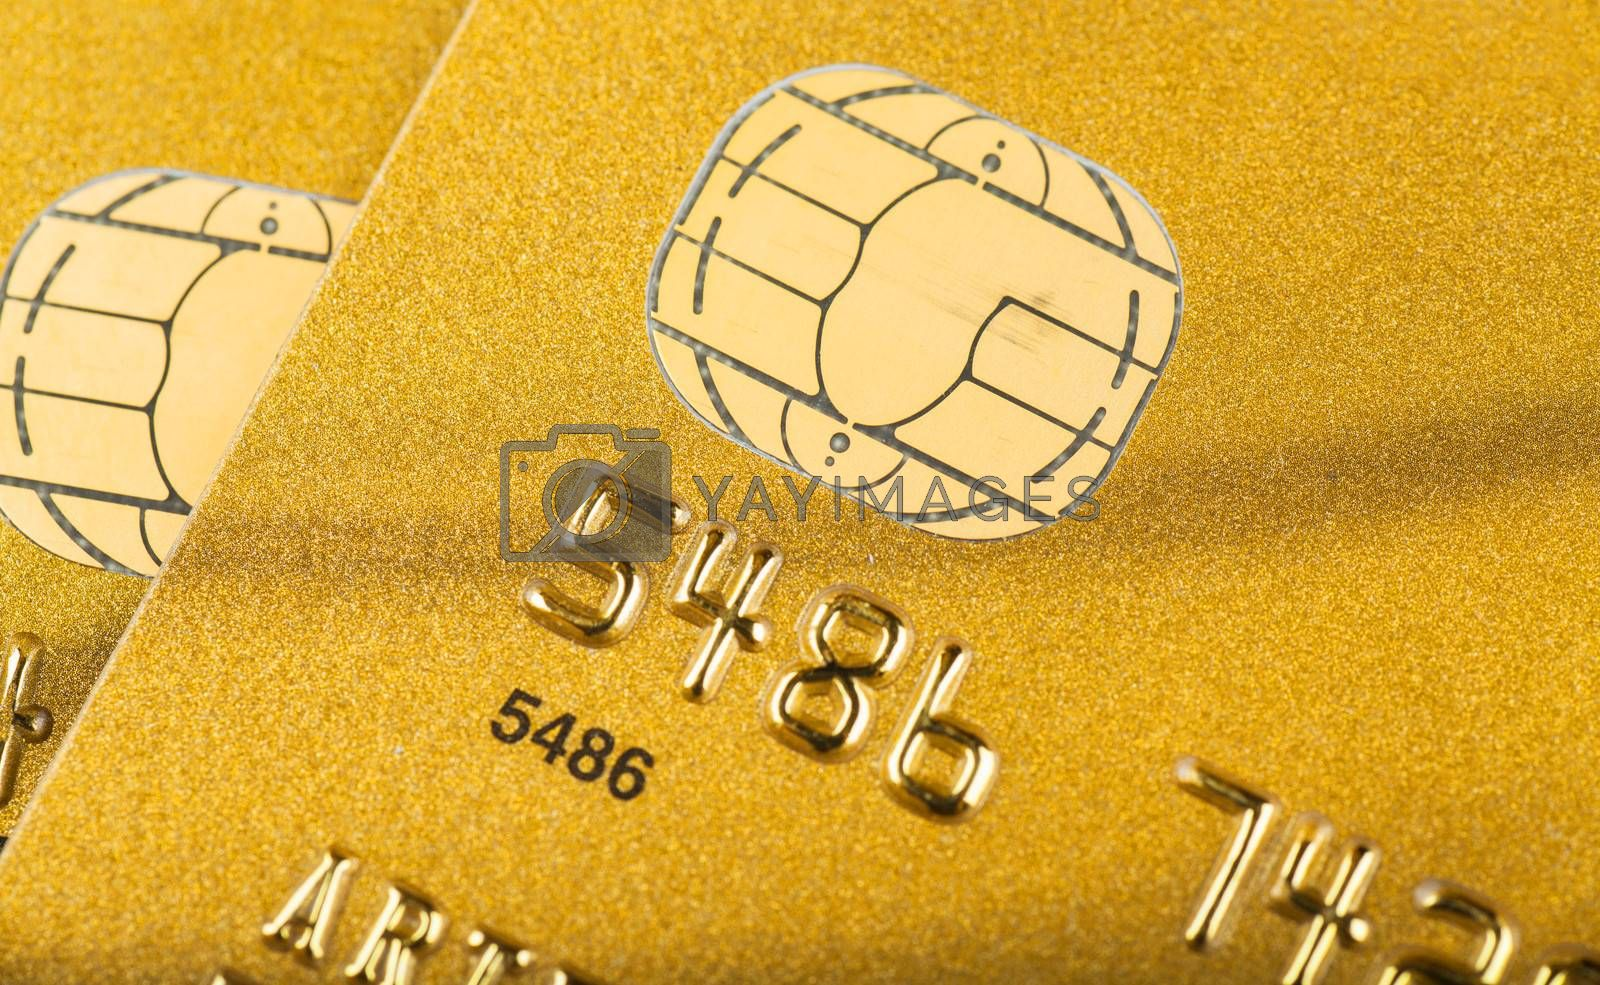 Macro view of golden credit cards with microchips